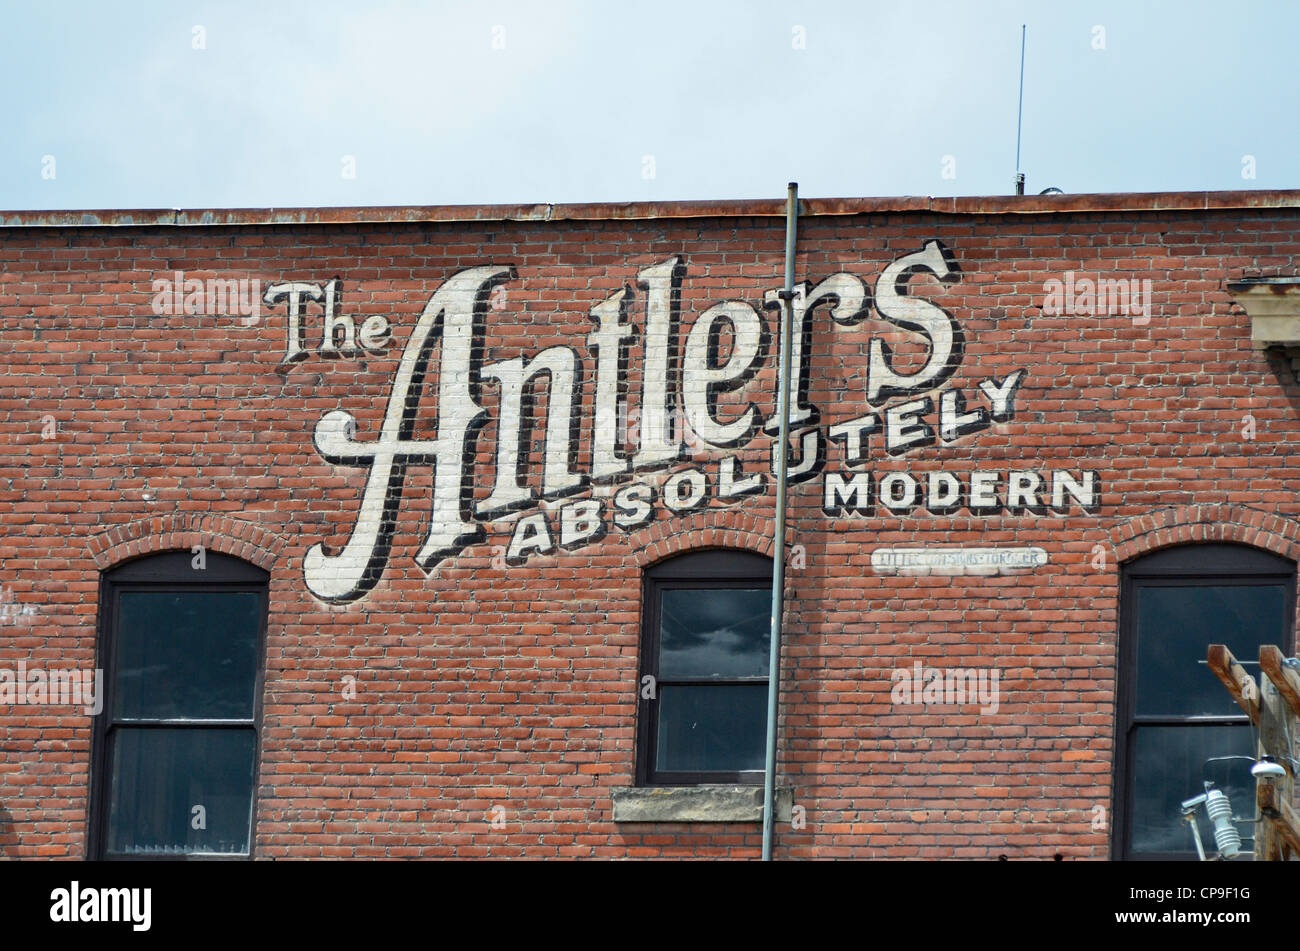 Old sign painted onto brick building in Baker City, Oregon. - Stock Image